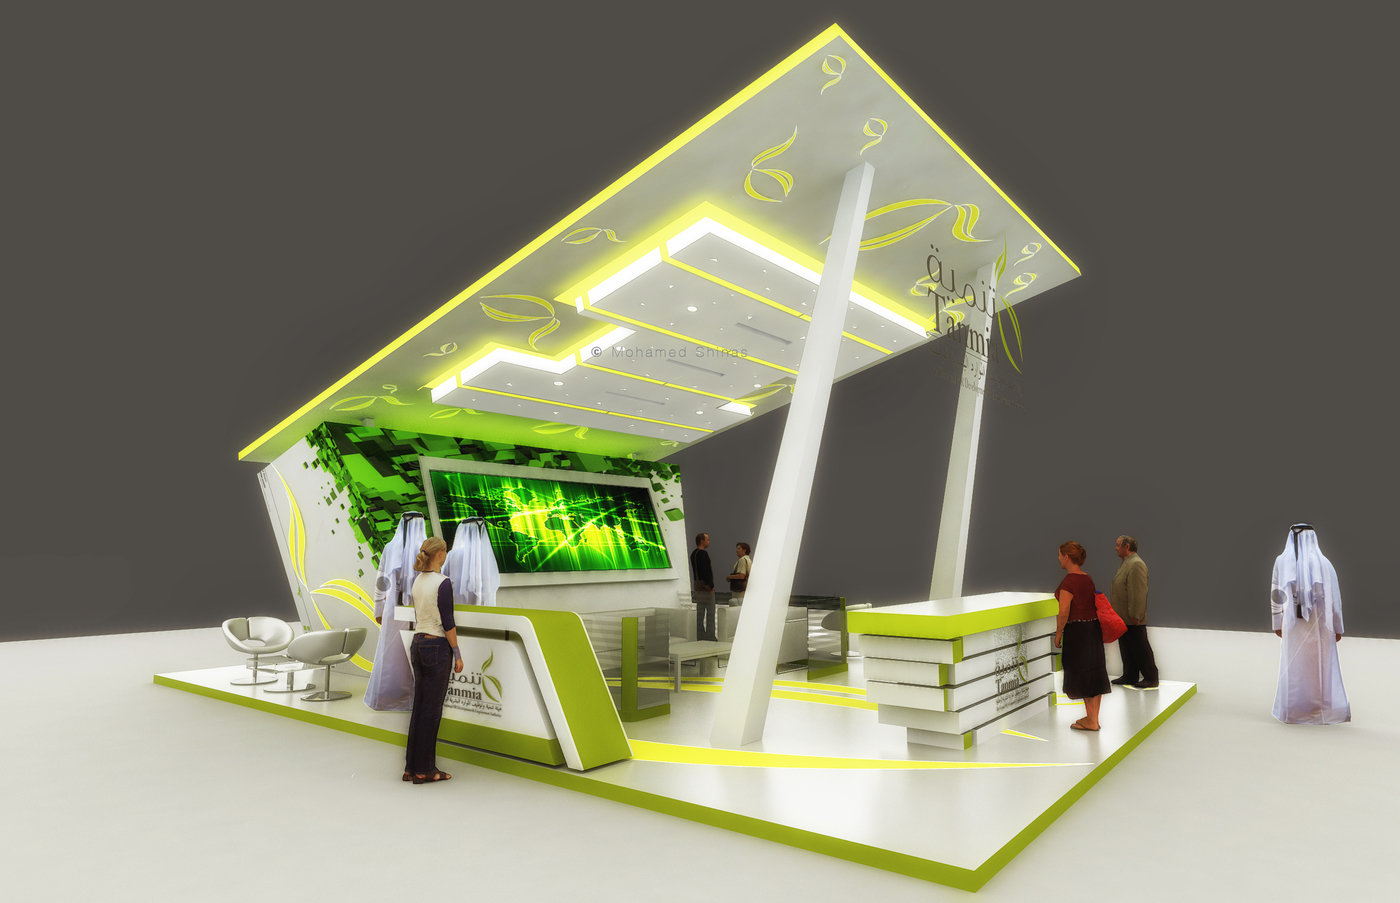 Exhibition Stand Design Images : Exhibition stand design by mohamed shinas at coroflot